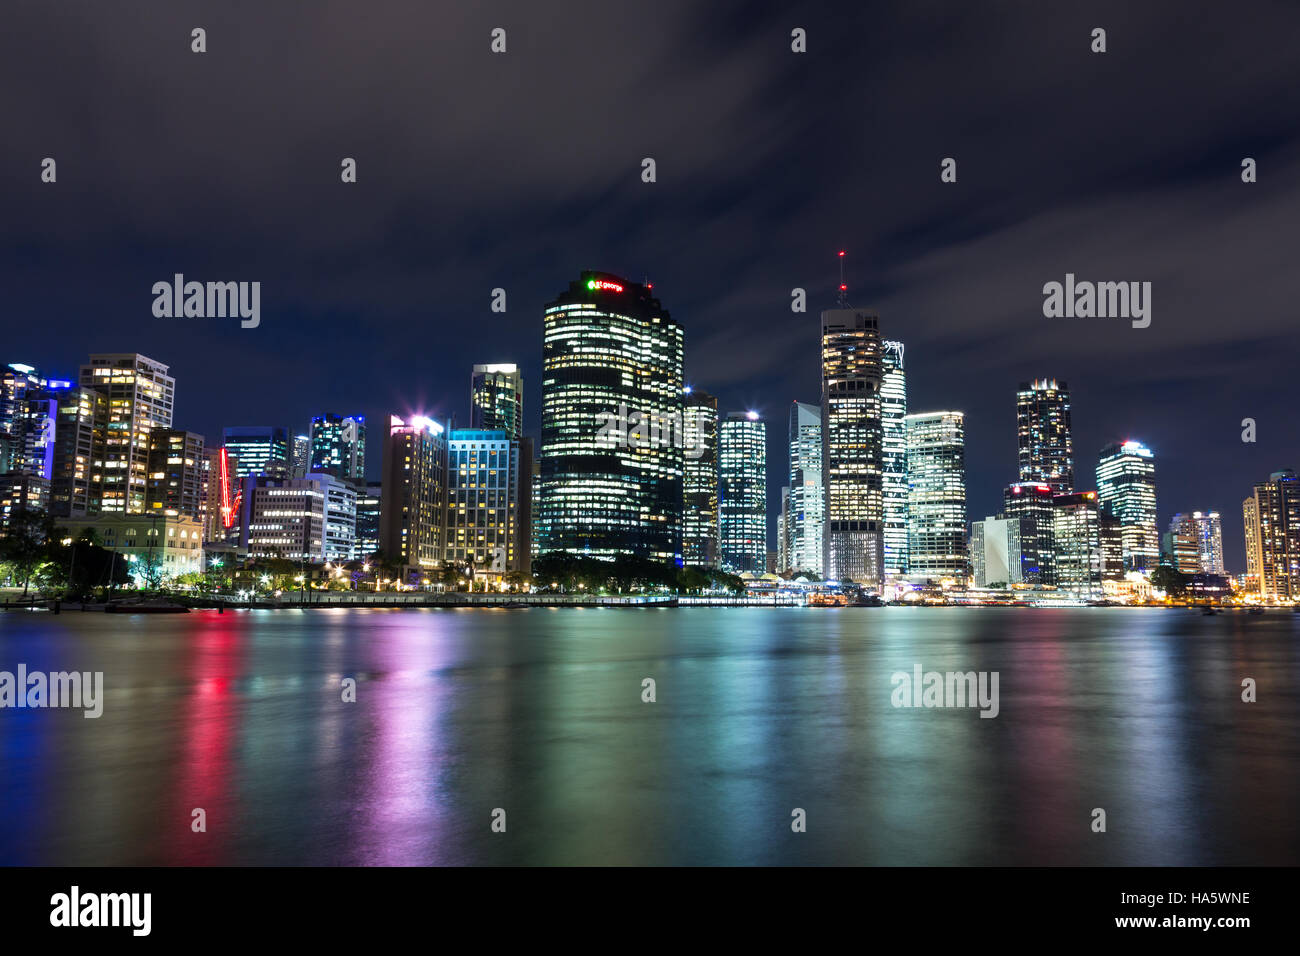 Brisbane city nighttime skyline with colorful reflections in the river - Stock Image